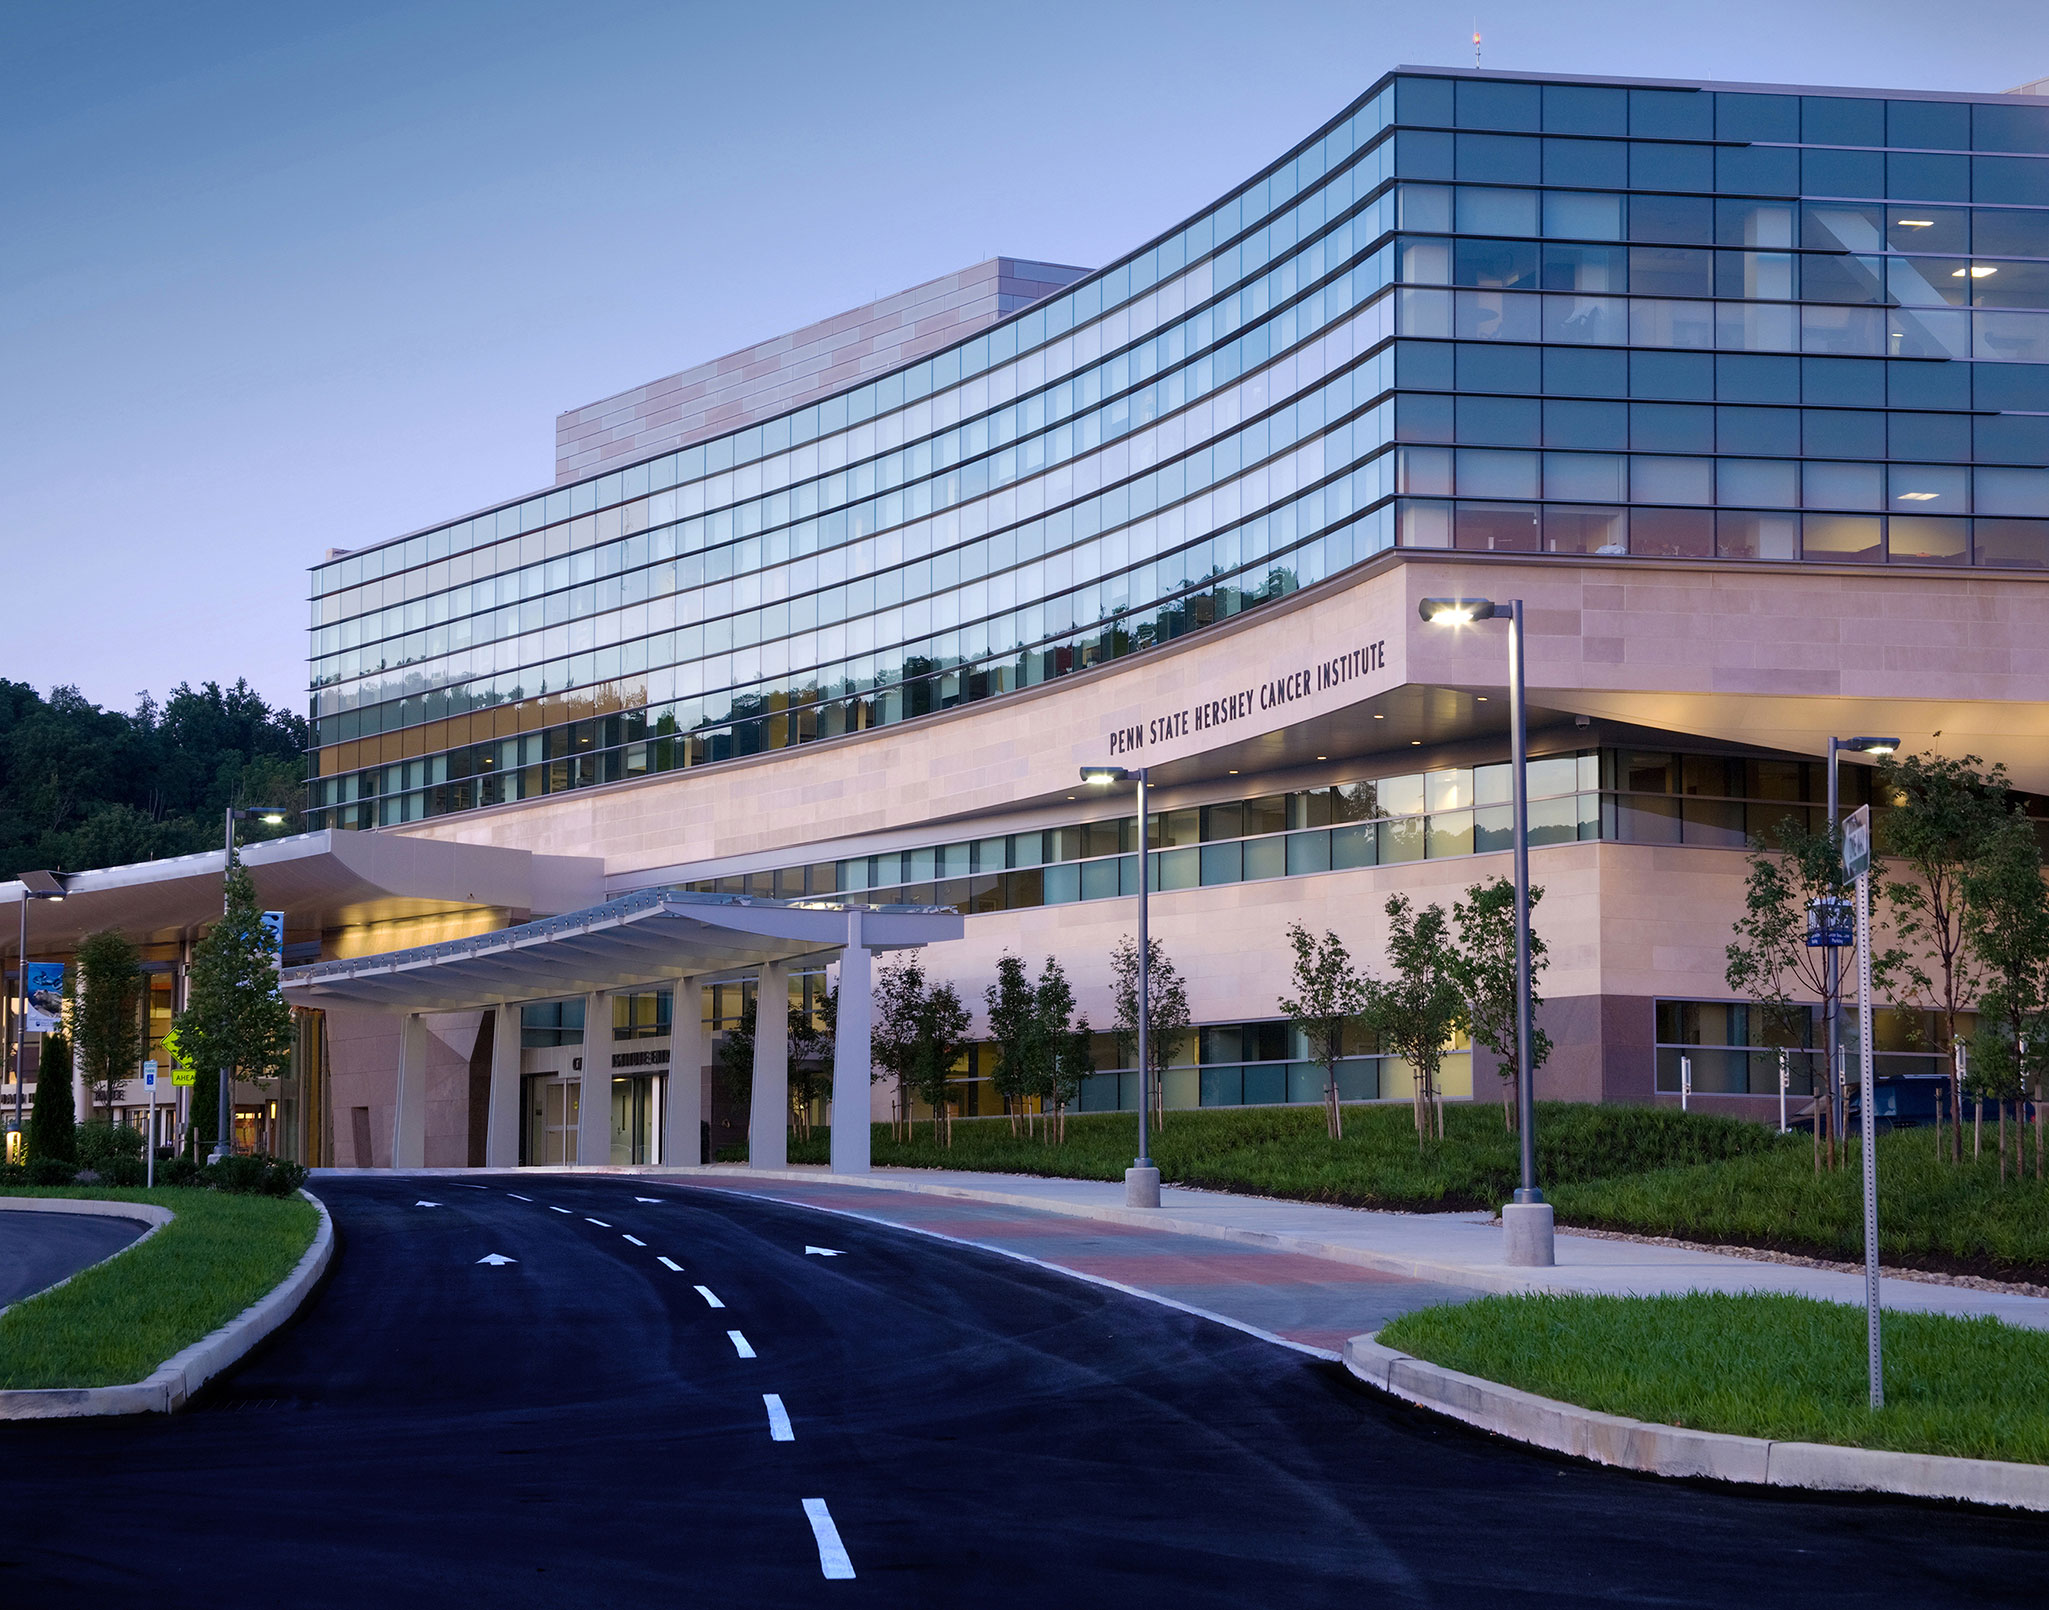 The front of Penn State Cancer Institute is seen with an empty road leading up to it.